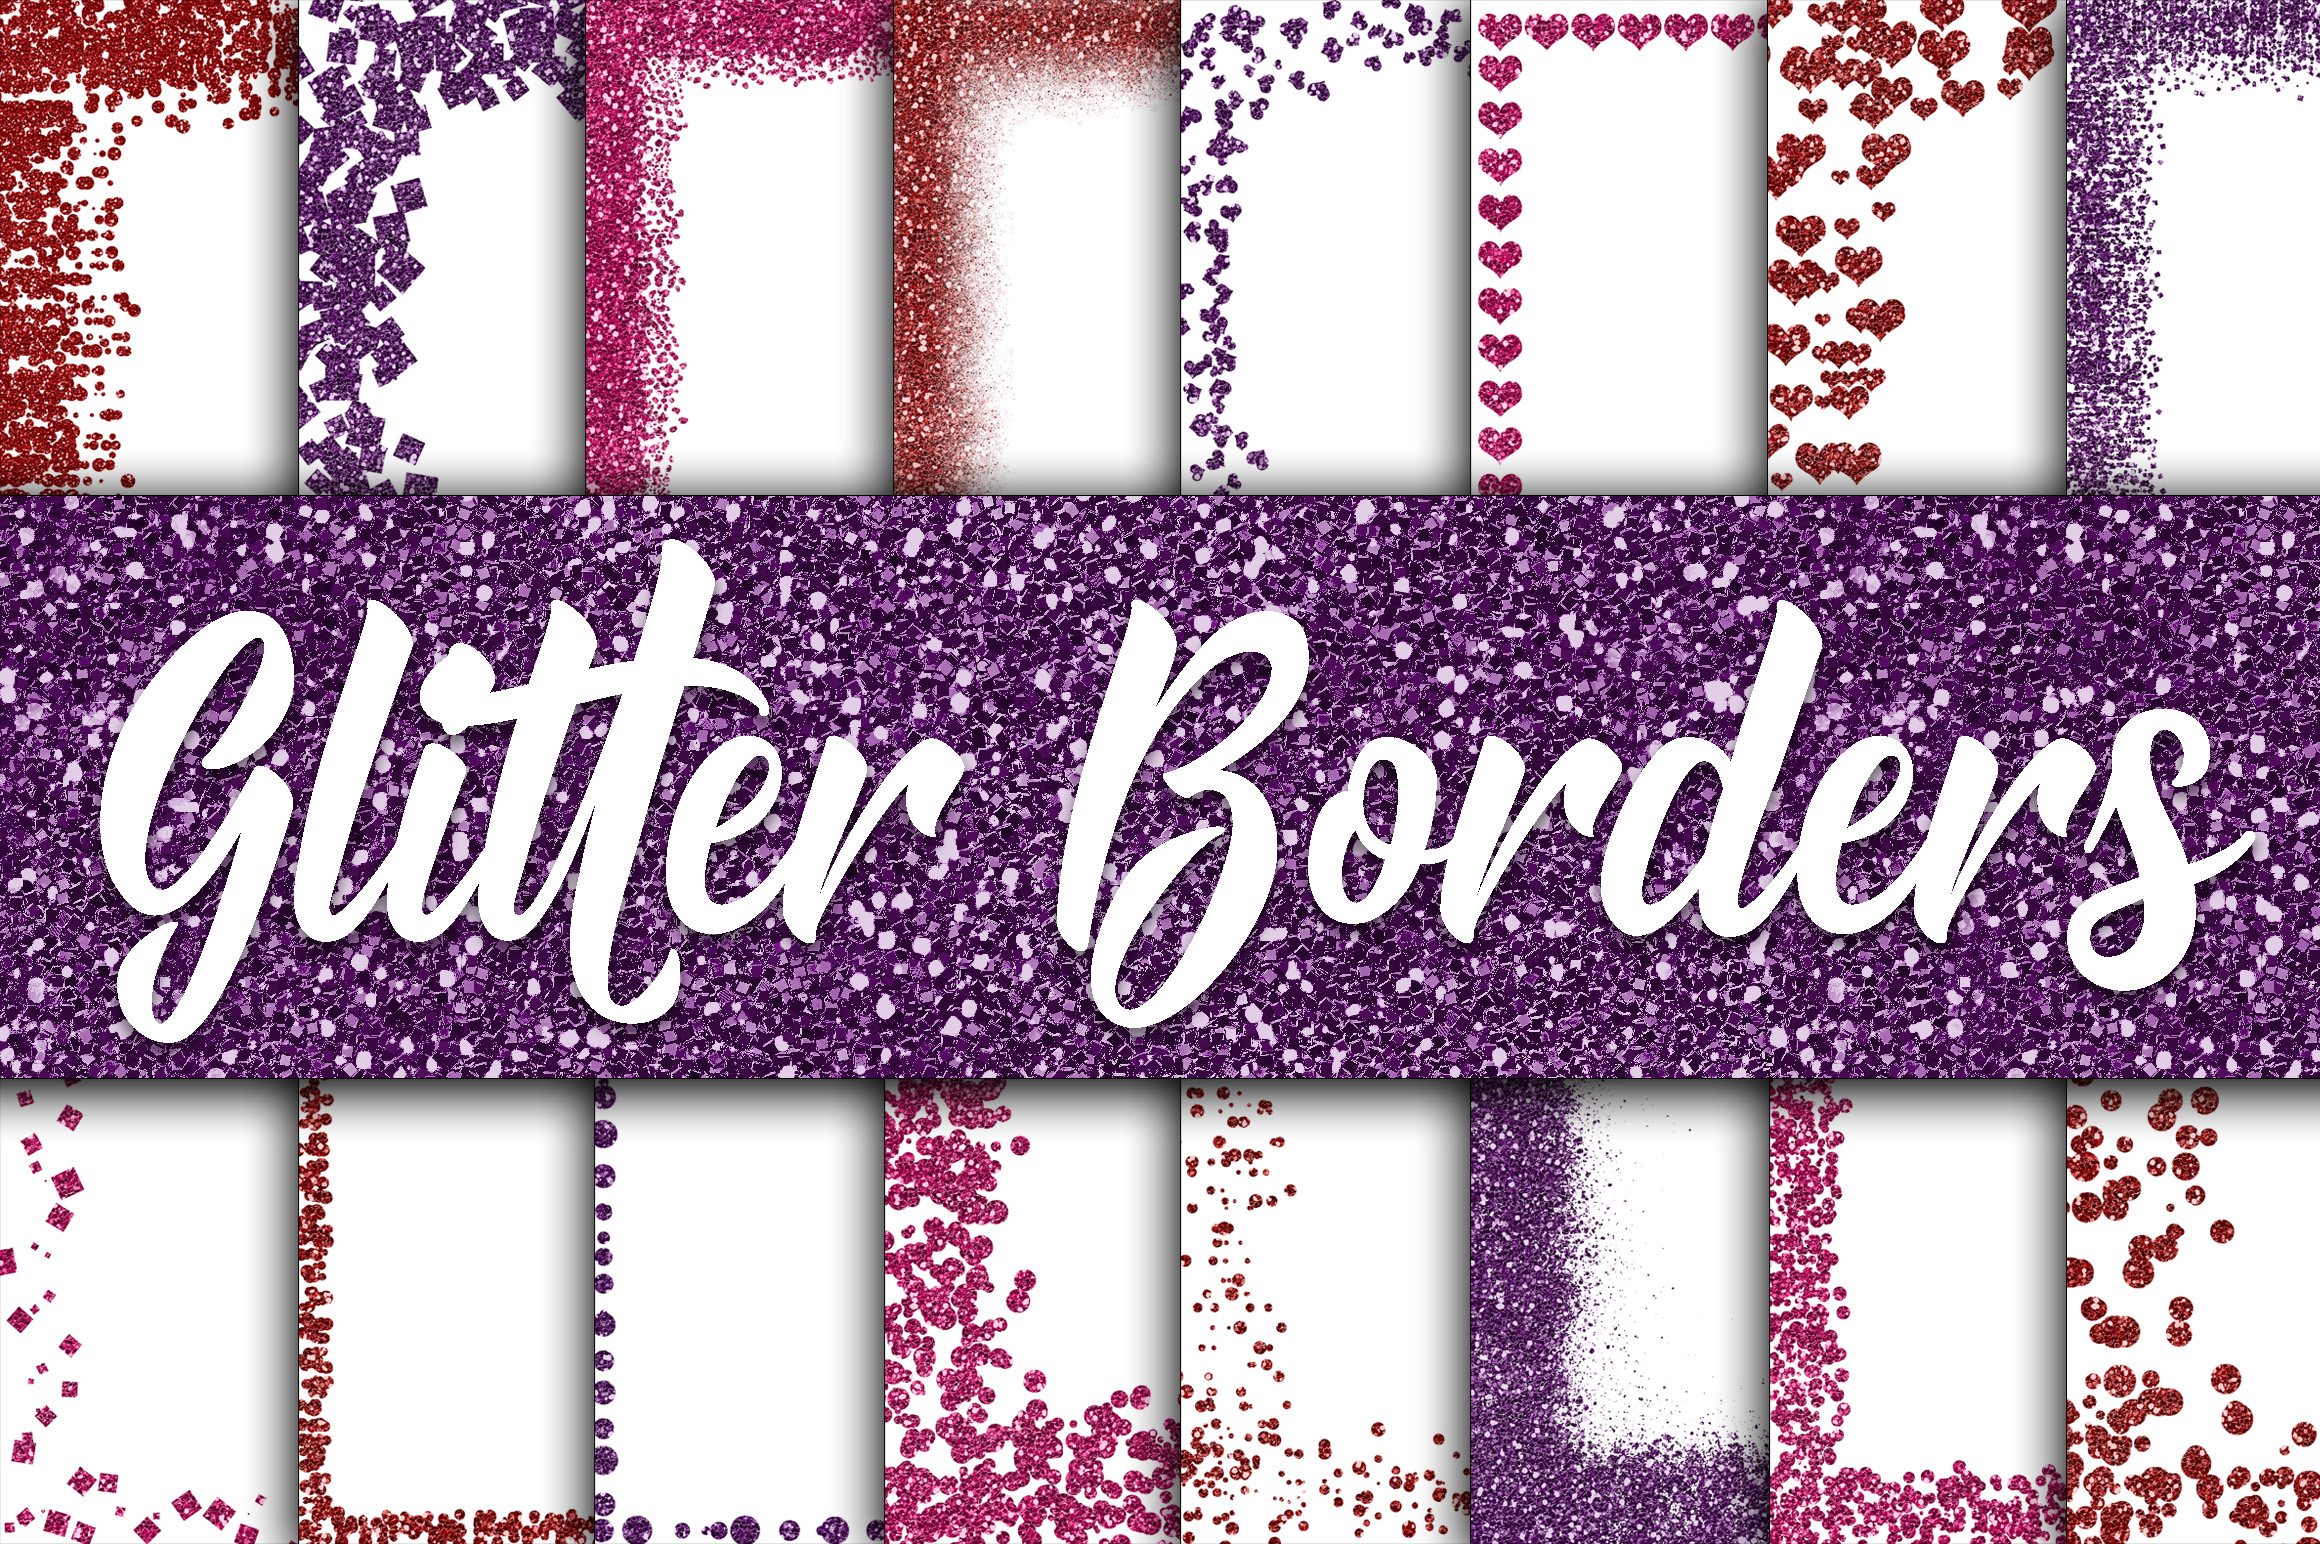 Valentine Glitter Borders Digital Paper - Includes 2 Sizes example image 1